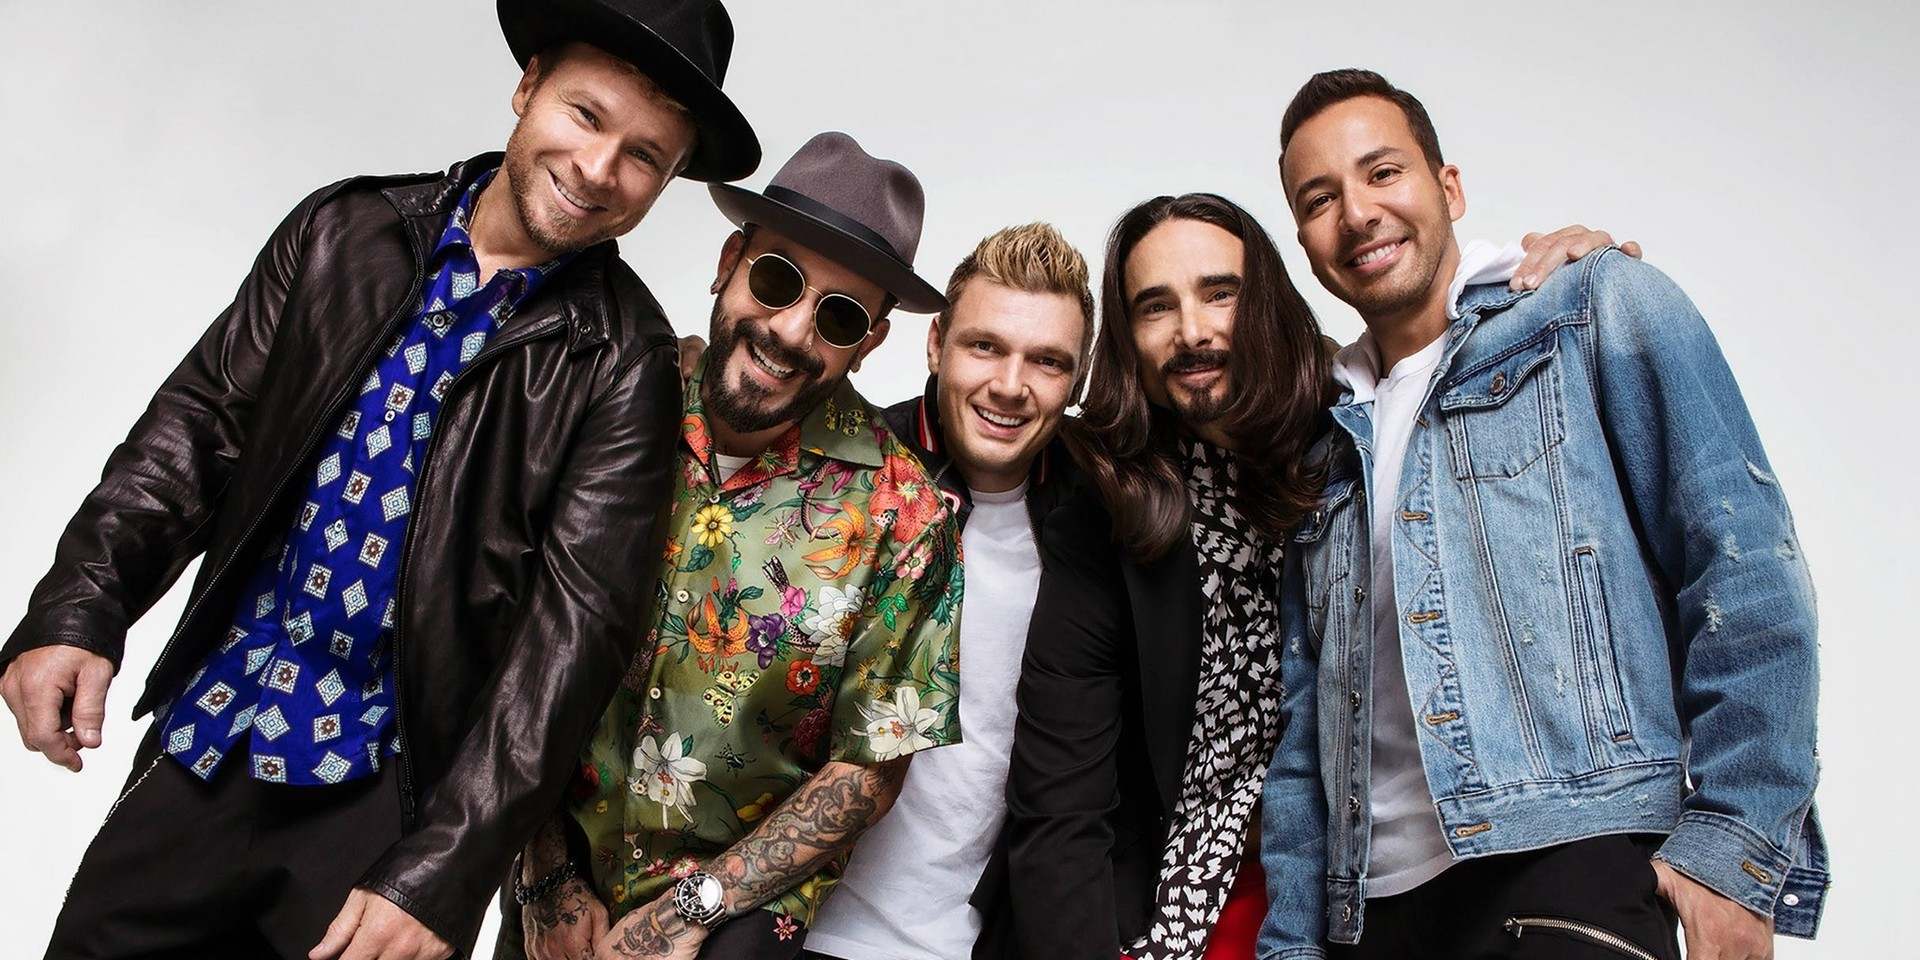 Backstreet Boys upcoming Singapore show is now sold out